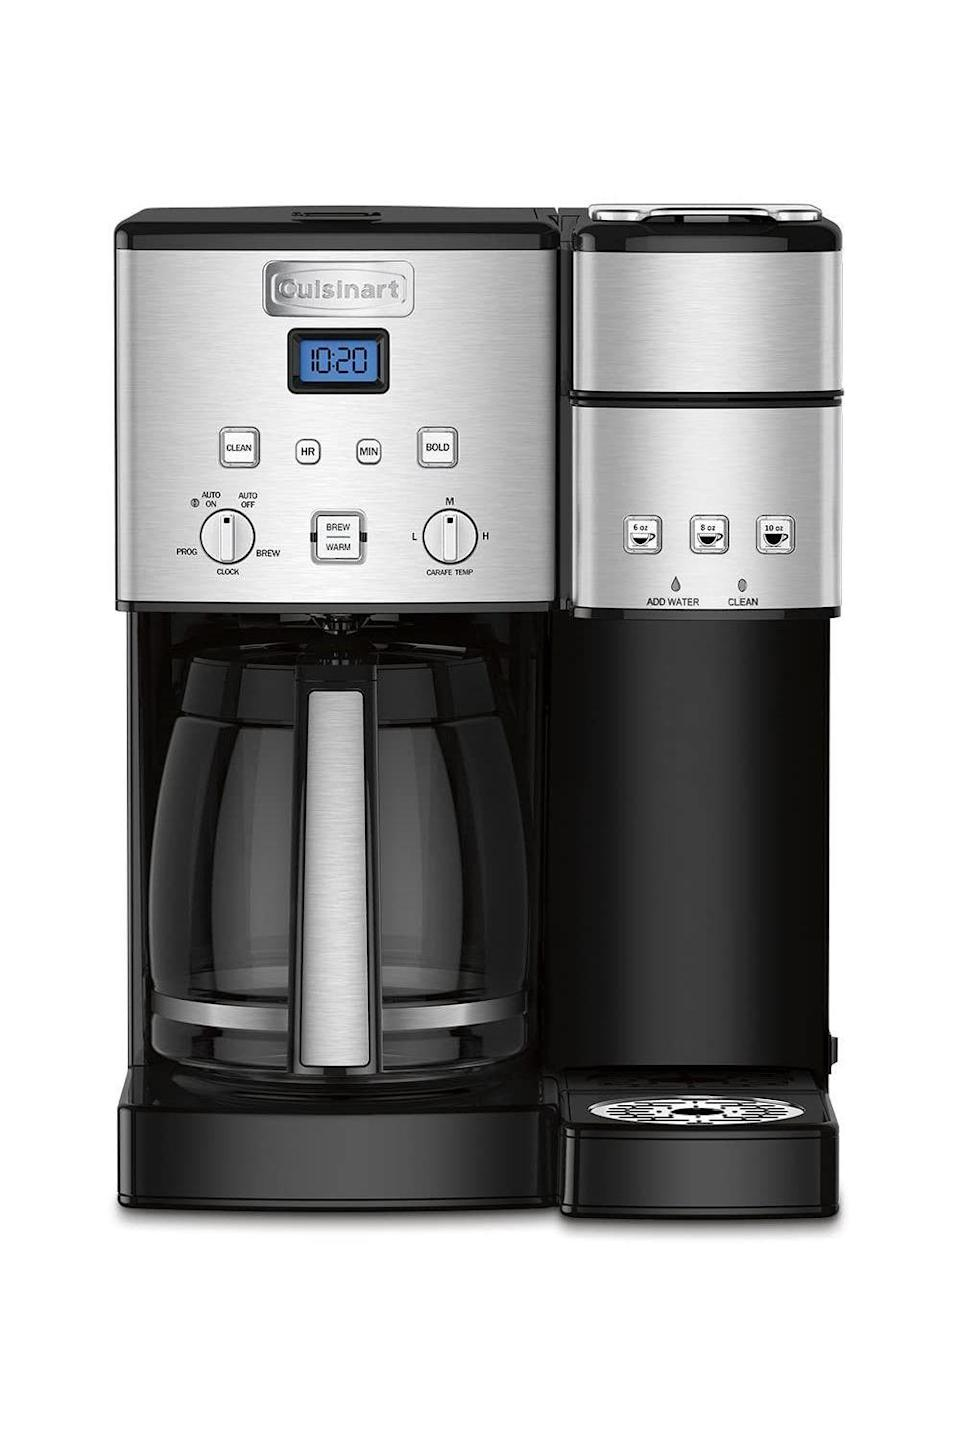 """<p><strong>Cuisinart</strong></p><p>amazon.com</p><p><strong>$199.95</strong></p><p><a href=""""https://www.amazon.com/dp/B01KIG4YNO?tag=syn-yahoo-20&ascsubtag=%5Bartid%7C10072.g.26961897%5Bsrc%7Cyahoo-us"""" rel=""""nofollow noopener"""" target=""""_blank"""" data-ylk=""""slk:Shop Now"""" class=""""link rapid-noclick-resp"""">Shop Now</a></p><p>When you're <em>that </em>tired, a coffee maker is something a new dad really needs. This appliance works overtime to brew a pot for one parent to keep warm at home and the other to make a single-serve cuppa to go.</p>"""